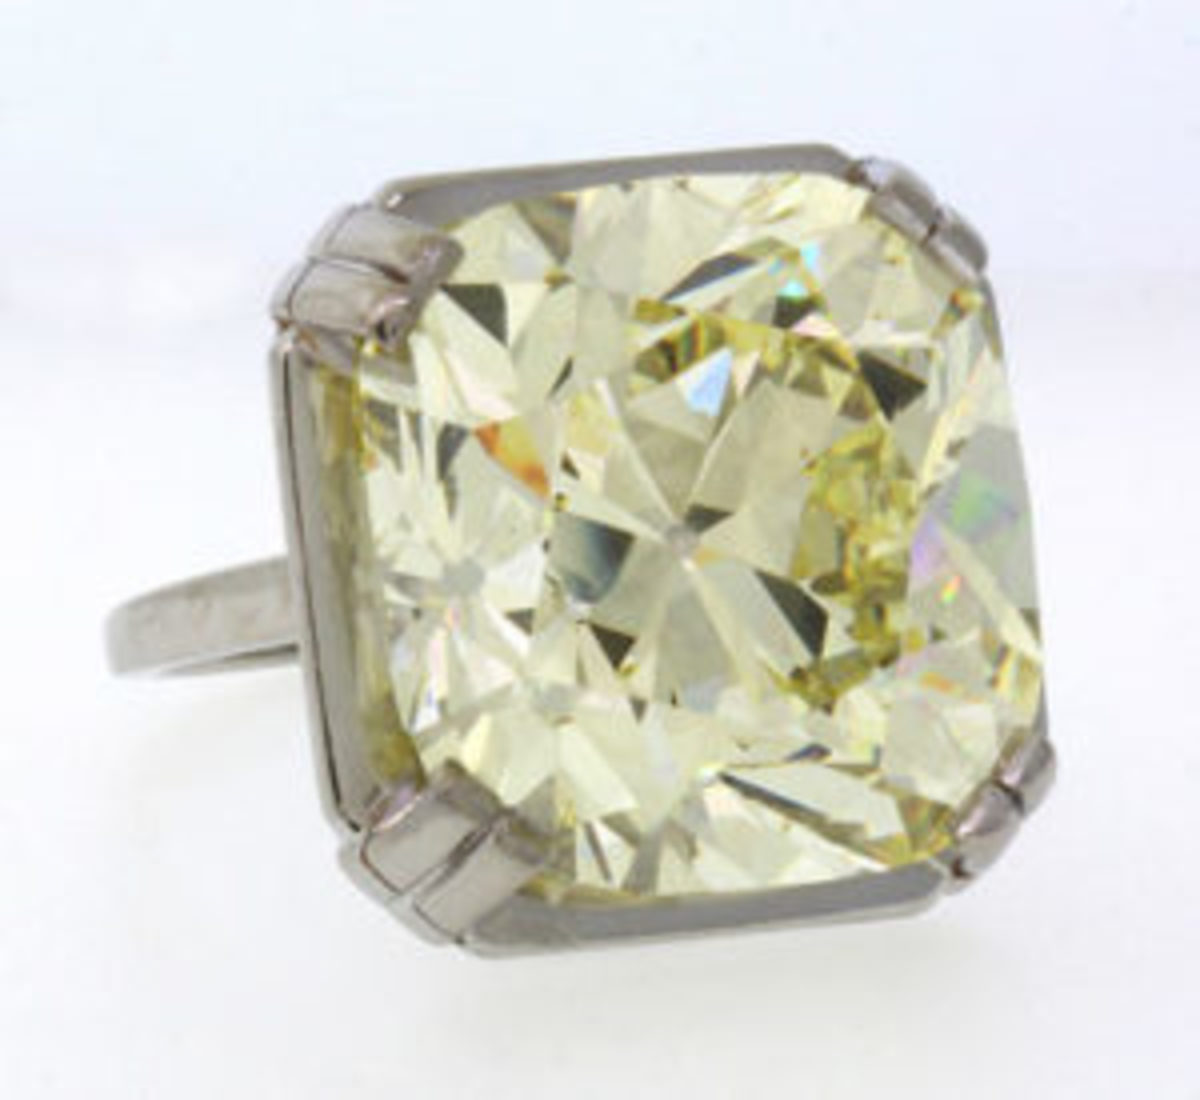 This rare 34.28 carat Old Mine Cut fancy light yellow diamond and platinum ring from the historic Spenger Collection, will be offered at Clars on February 17.